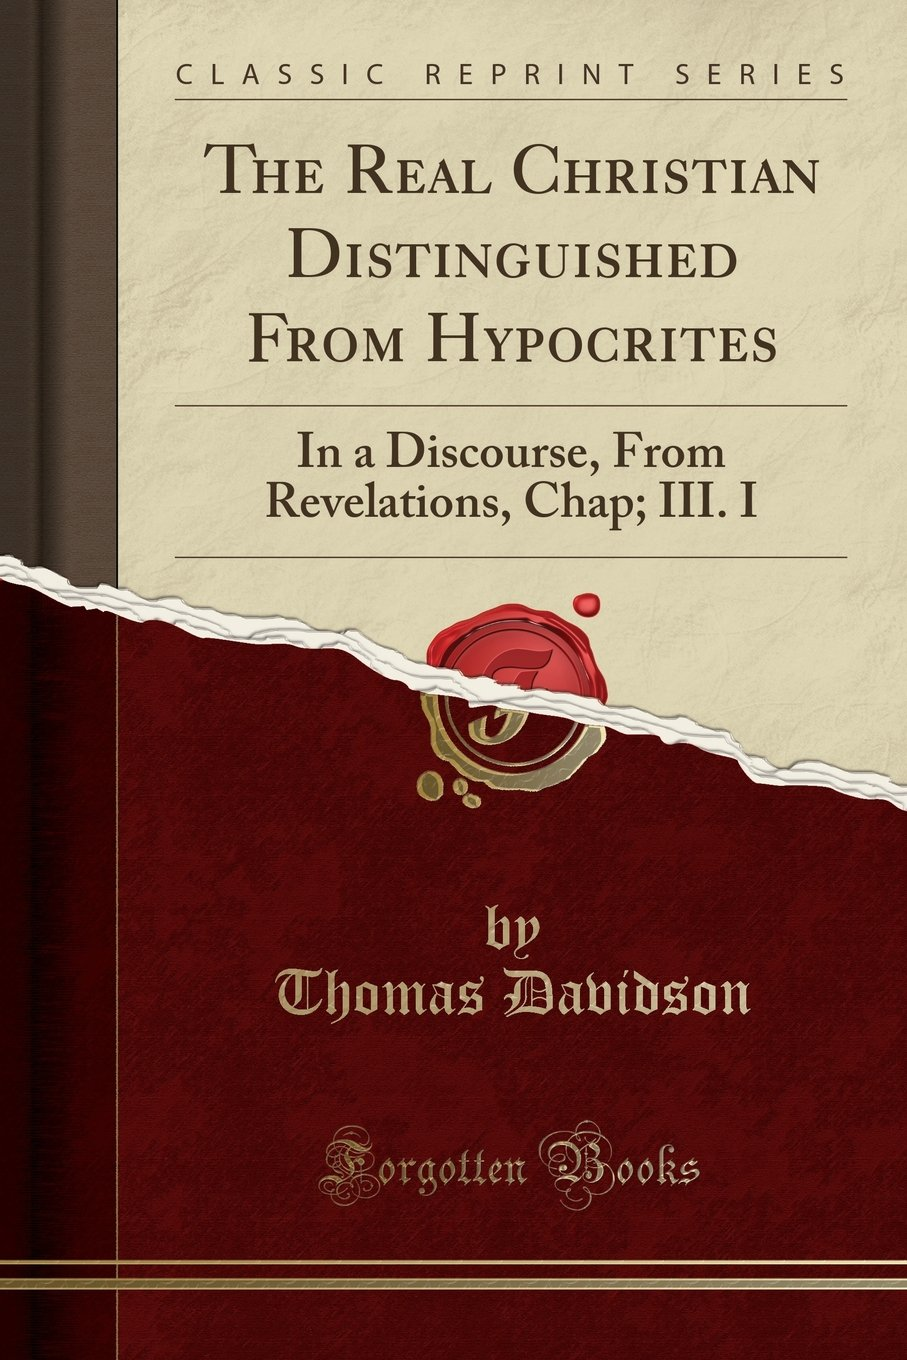 Download The Real Christian Distinguished From Hypocrites: In a Discourse, From Revelations, Chap; III. I (Classic Reprint) pdf epub